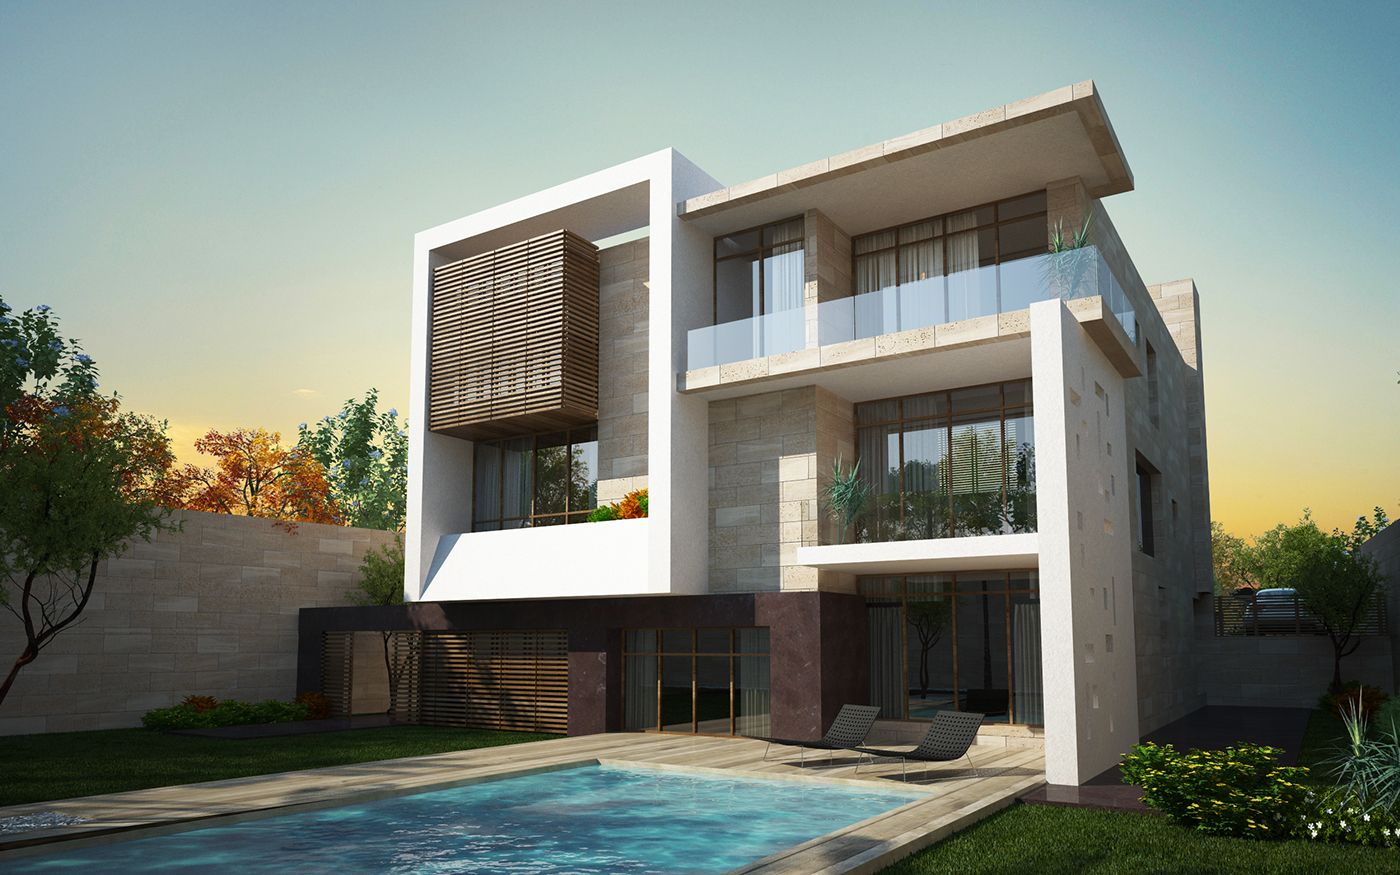 Top 10 houses of this week 27062015 architecture design for Top 10 beautiful houses